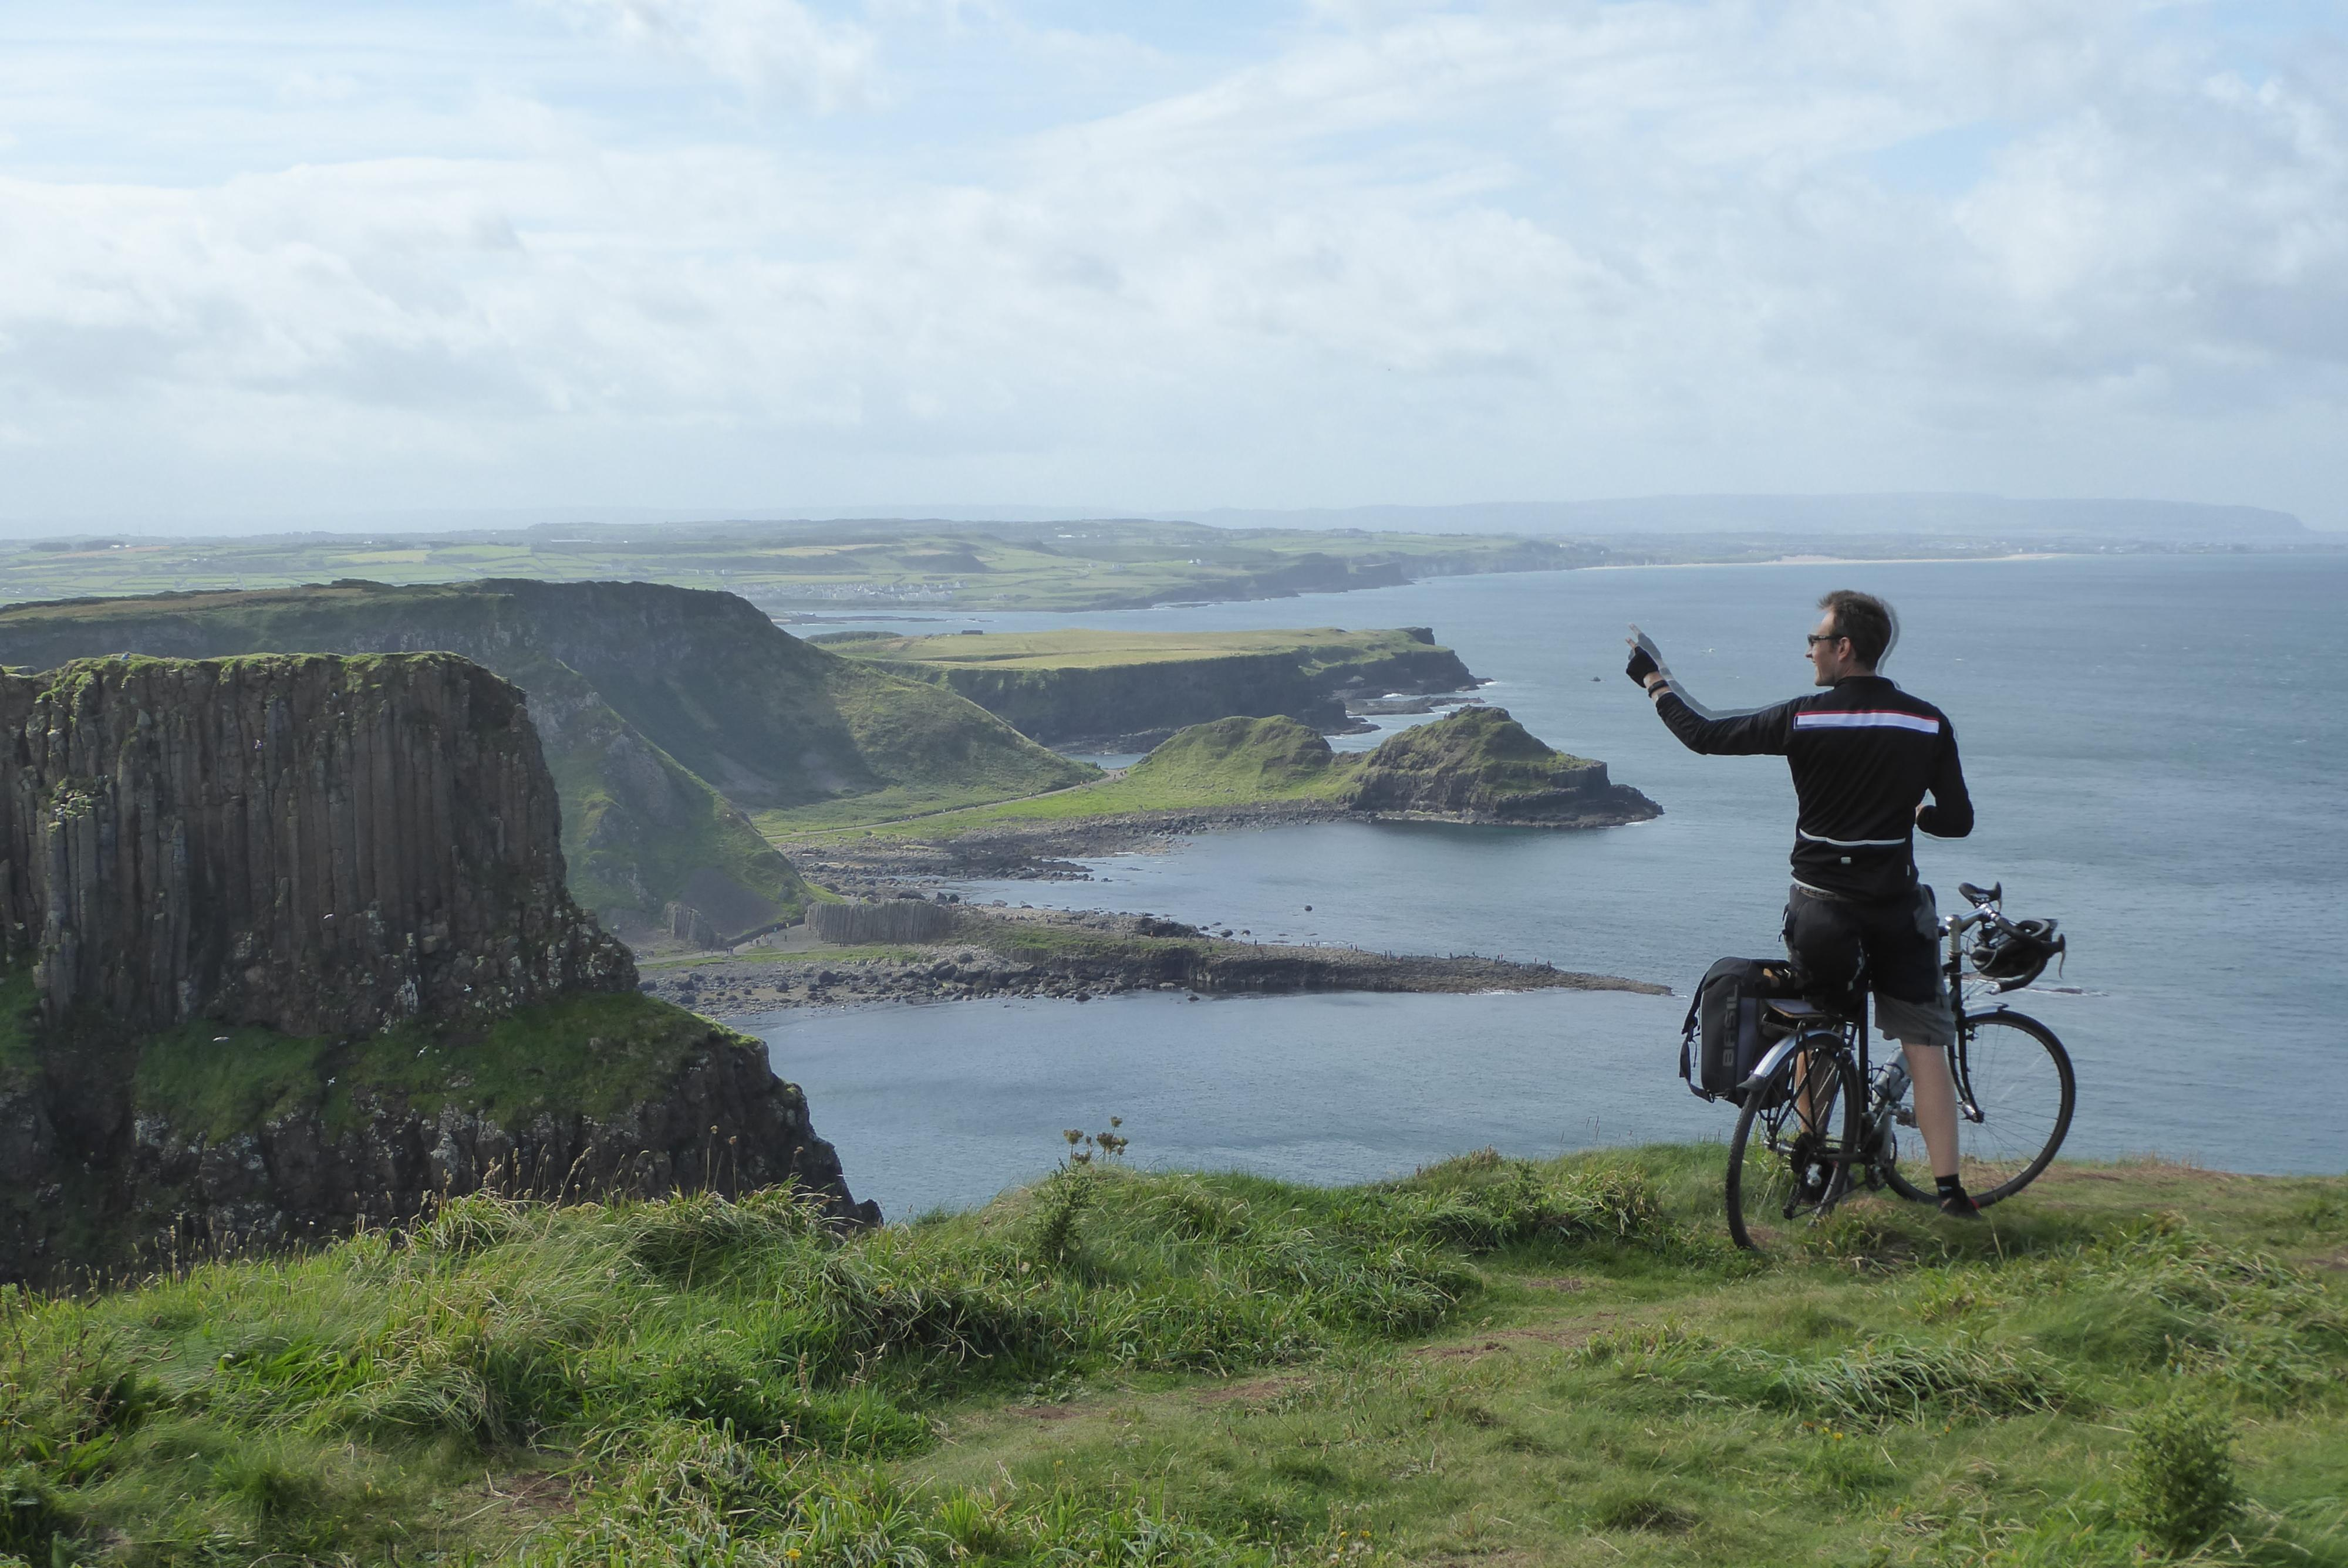 Cycling across the British Isles